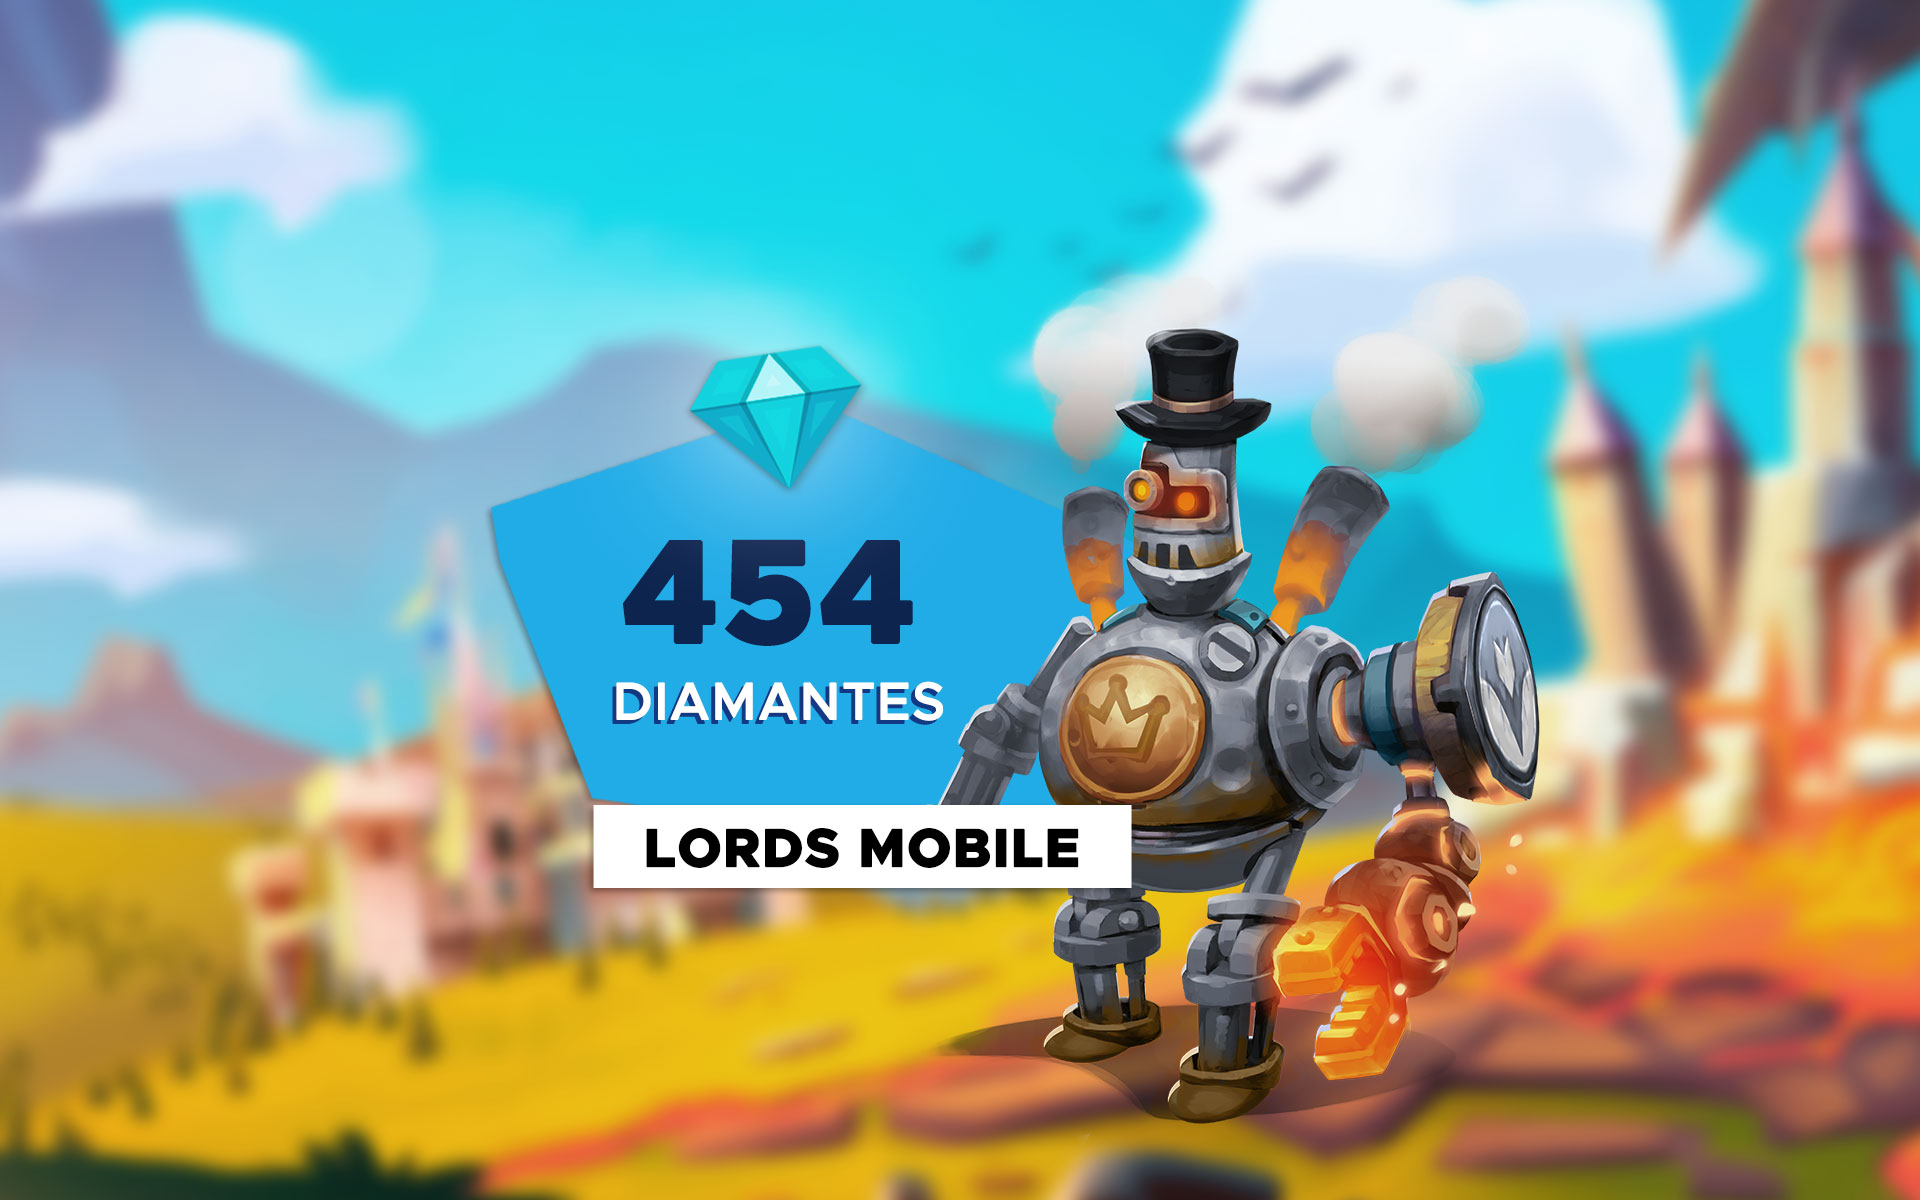 Lords Mobile - 454 Diamantes cover